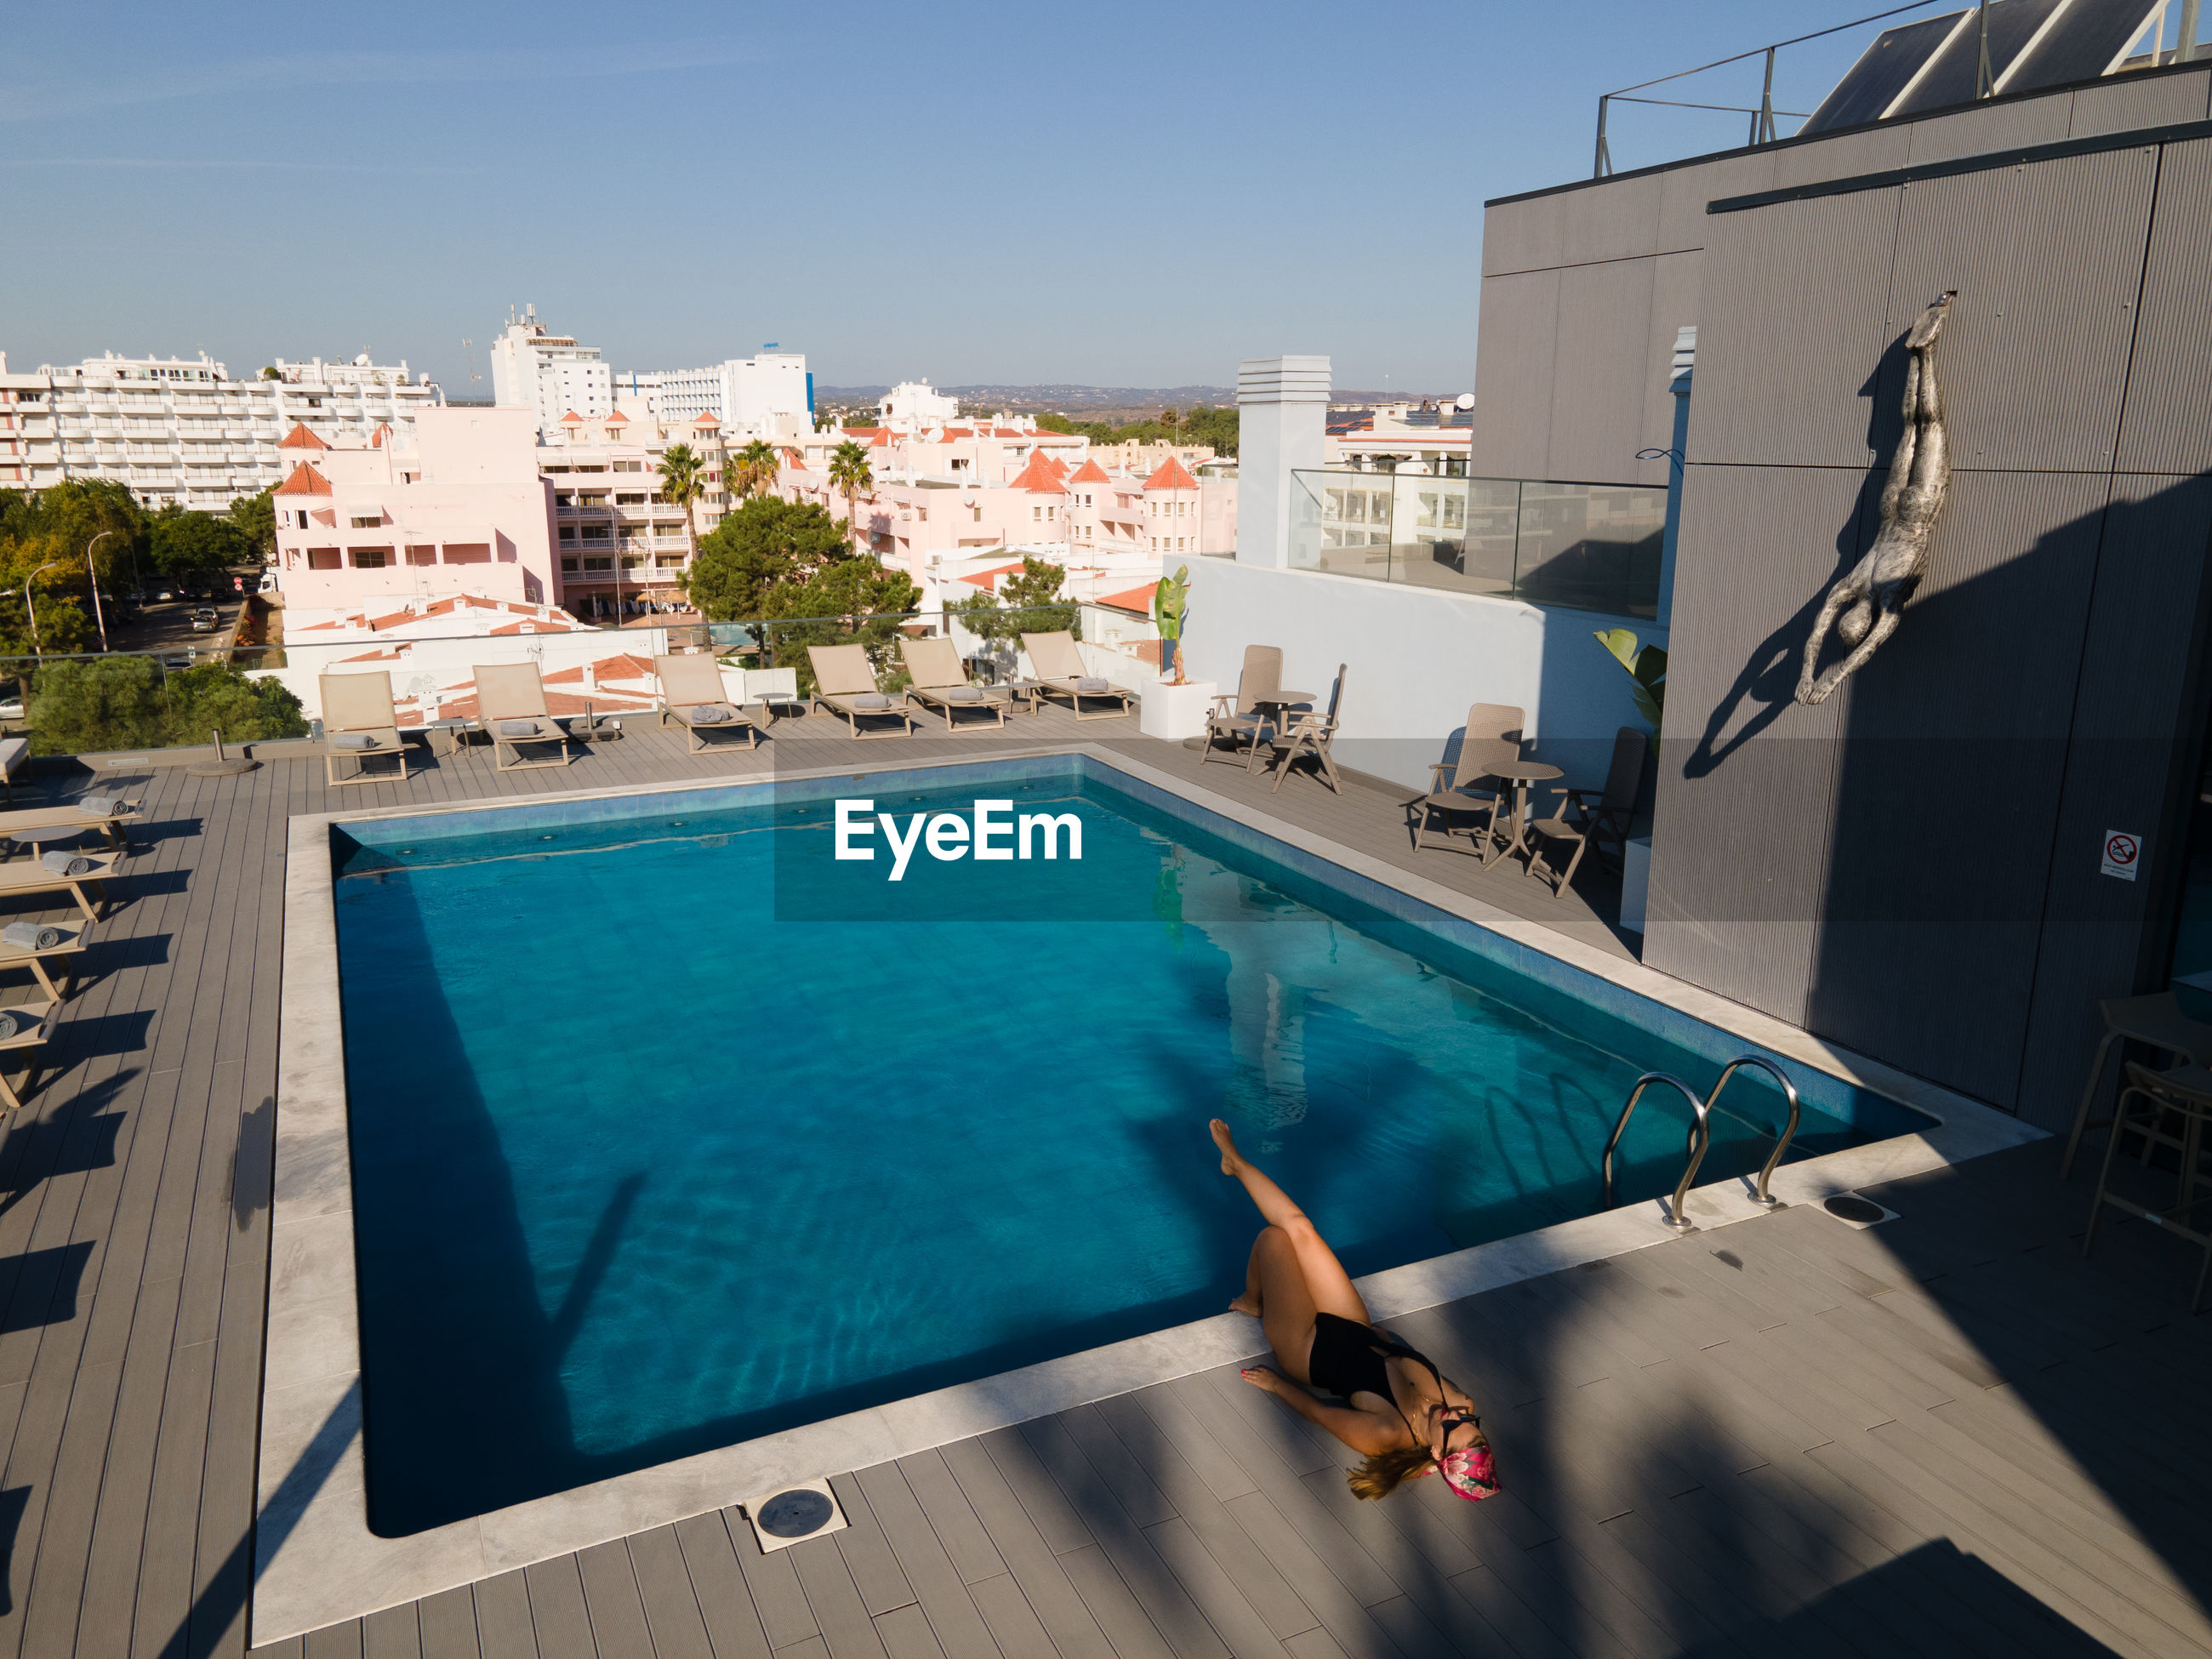 HIGH ANGLE VIEW OF SWIMMING POOL BY BUILDINGS AGAINST BLUE SKY